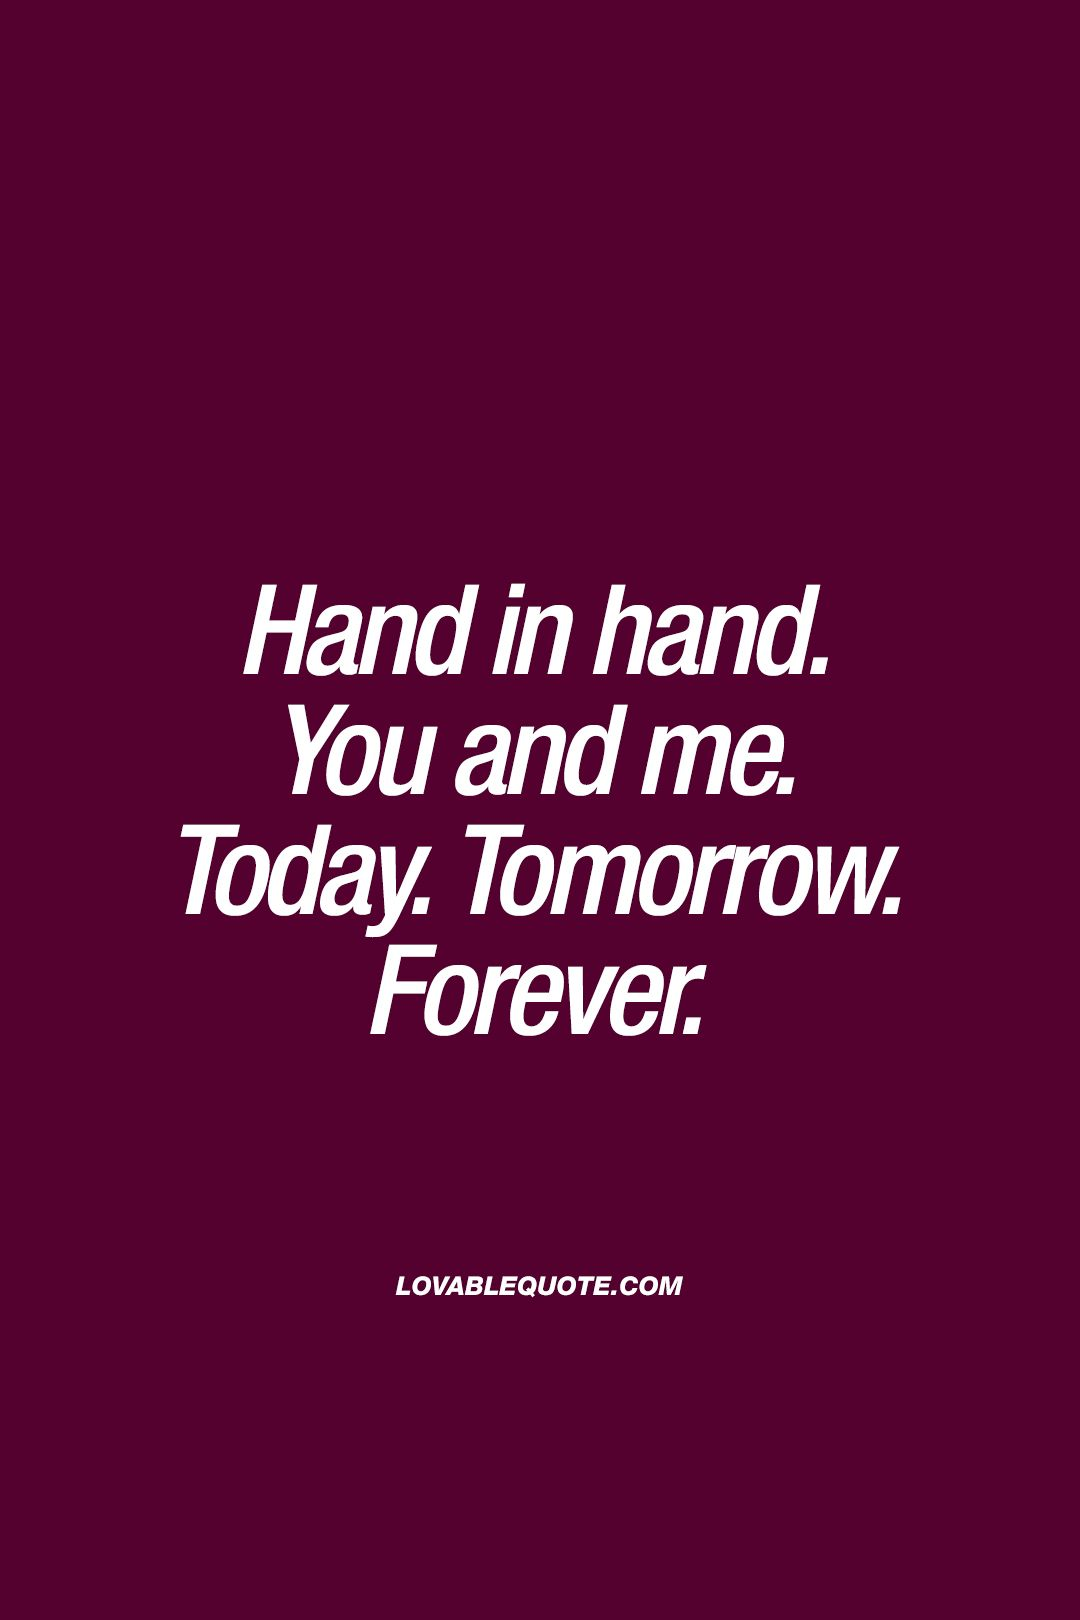 Hand in hand. You and me. Toda...